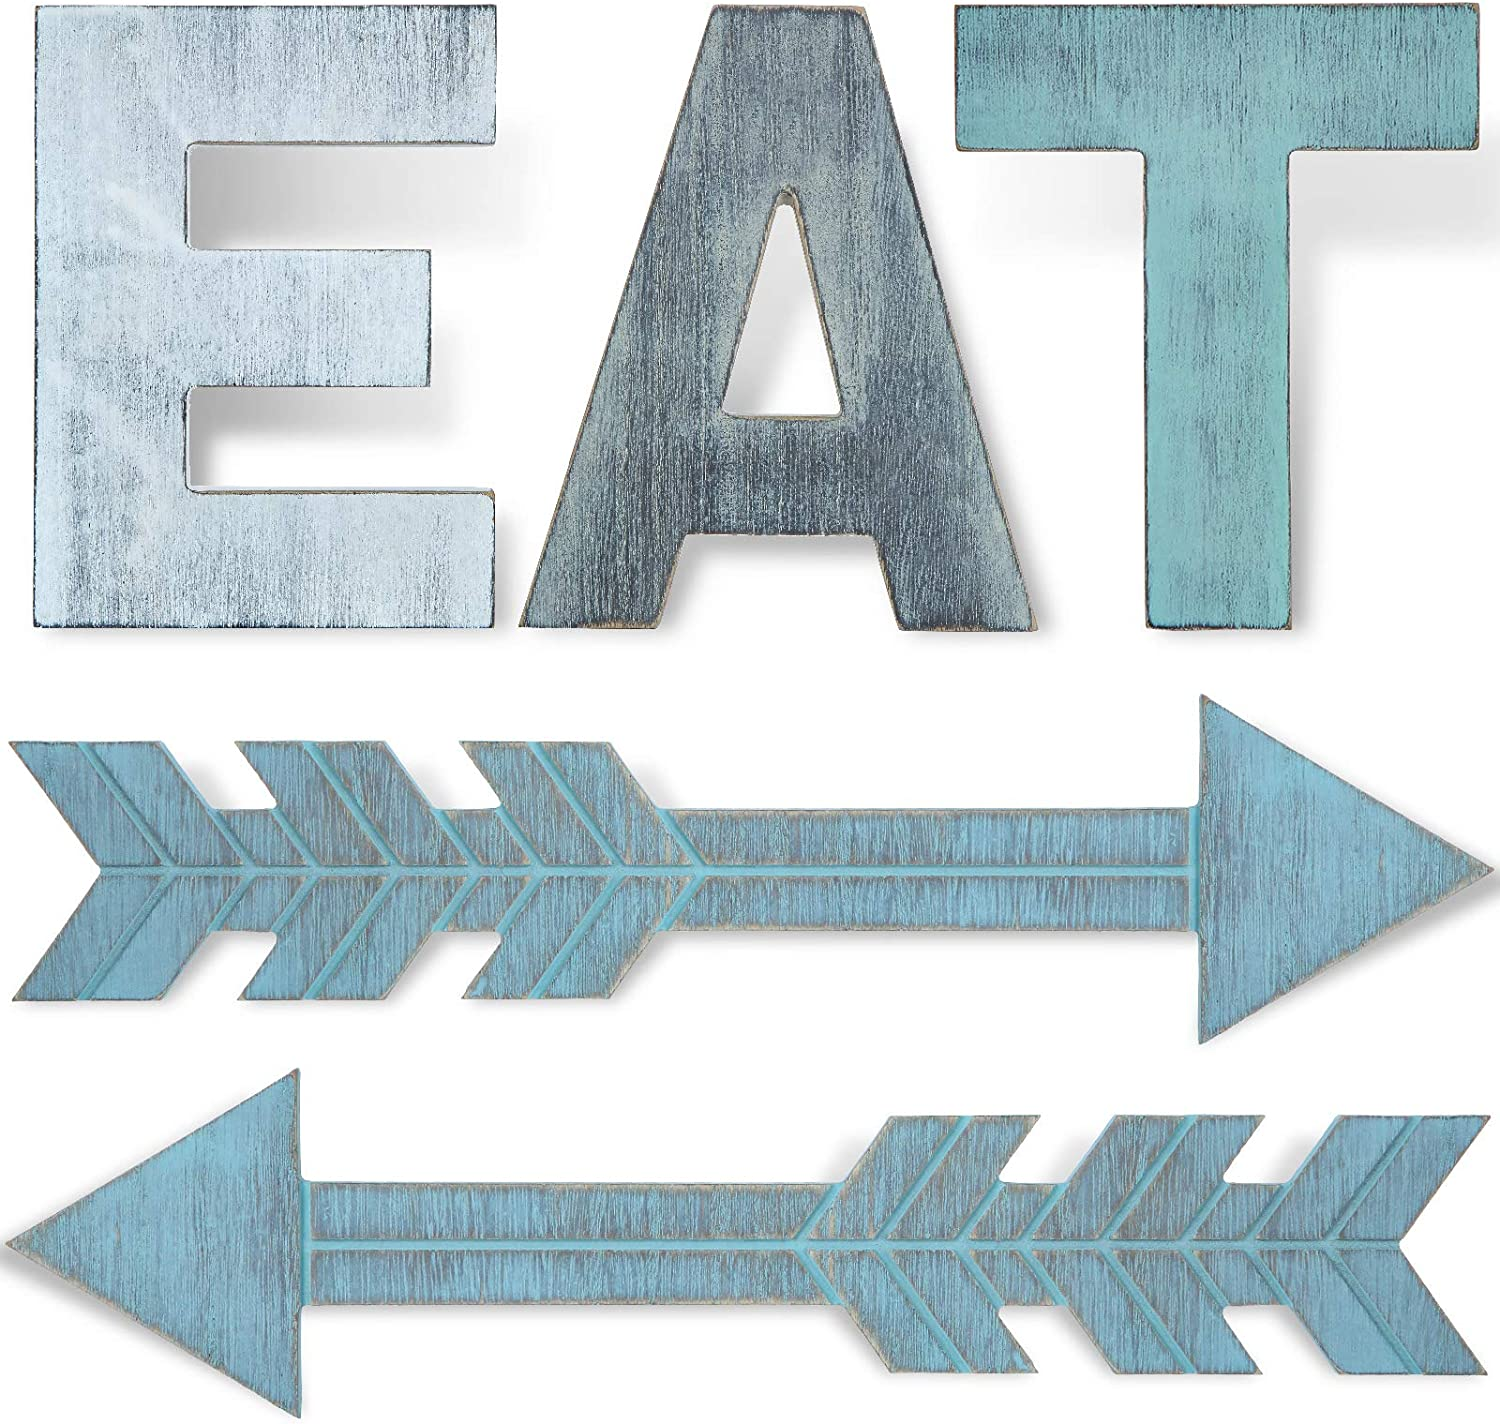 5 Pieces EAT Sign Kitchen Wood Rustic Sign Arrow Wall Decor EAT Farmhouse Decoration Hanging Arrow Wooden Sign for Kitchen Wall Home Dining Room